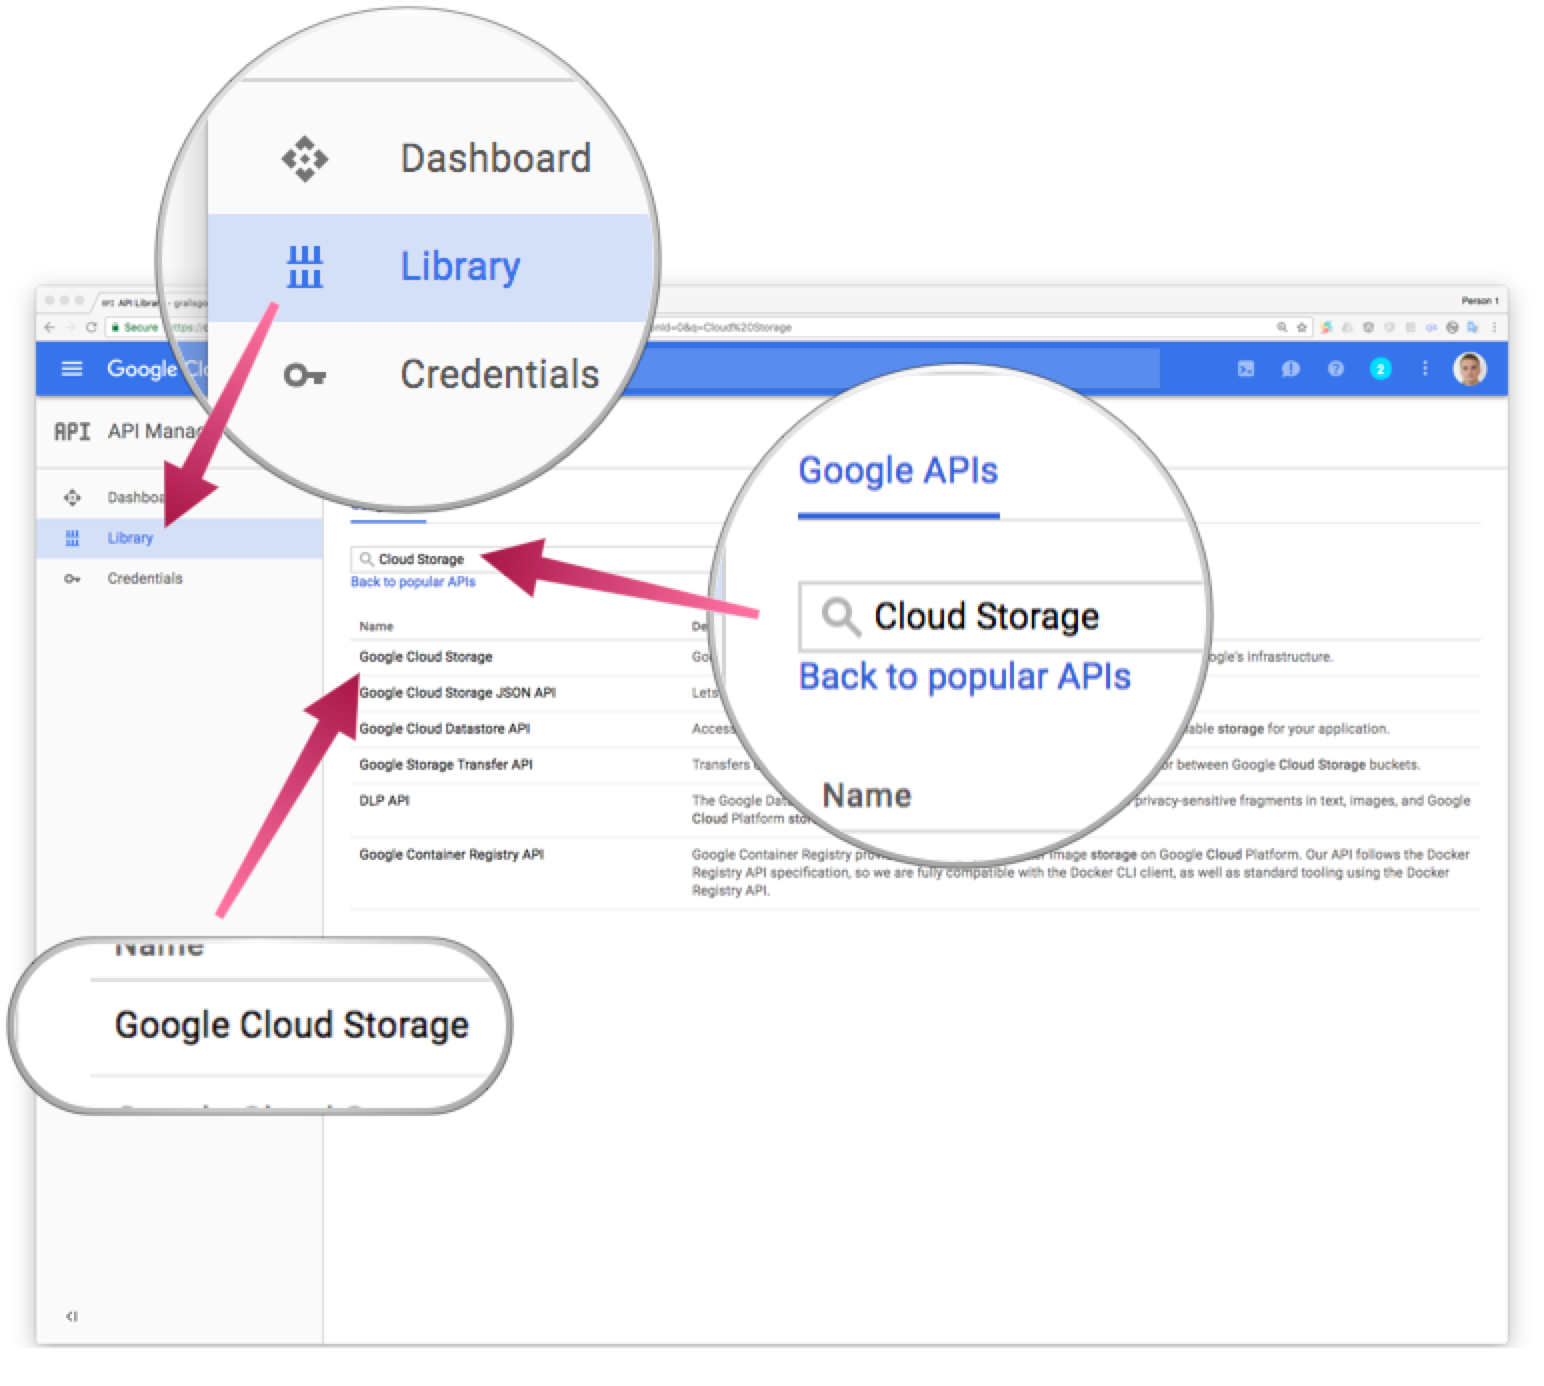 Screenshot showing how to search for Cloud Storage